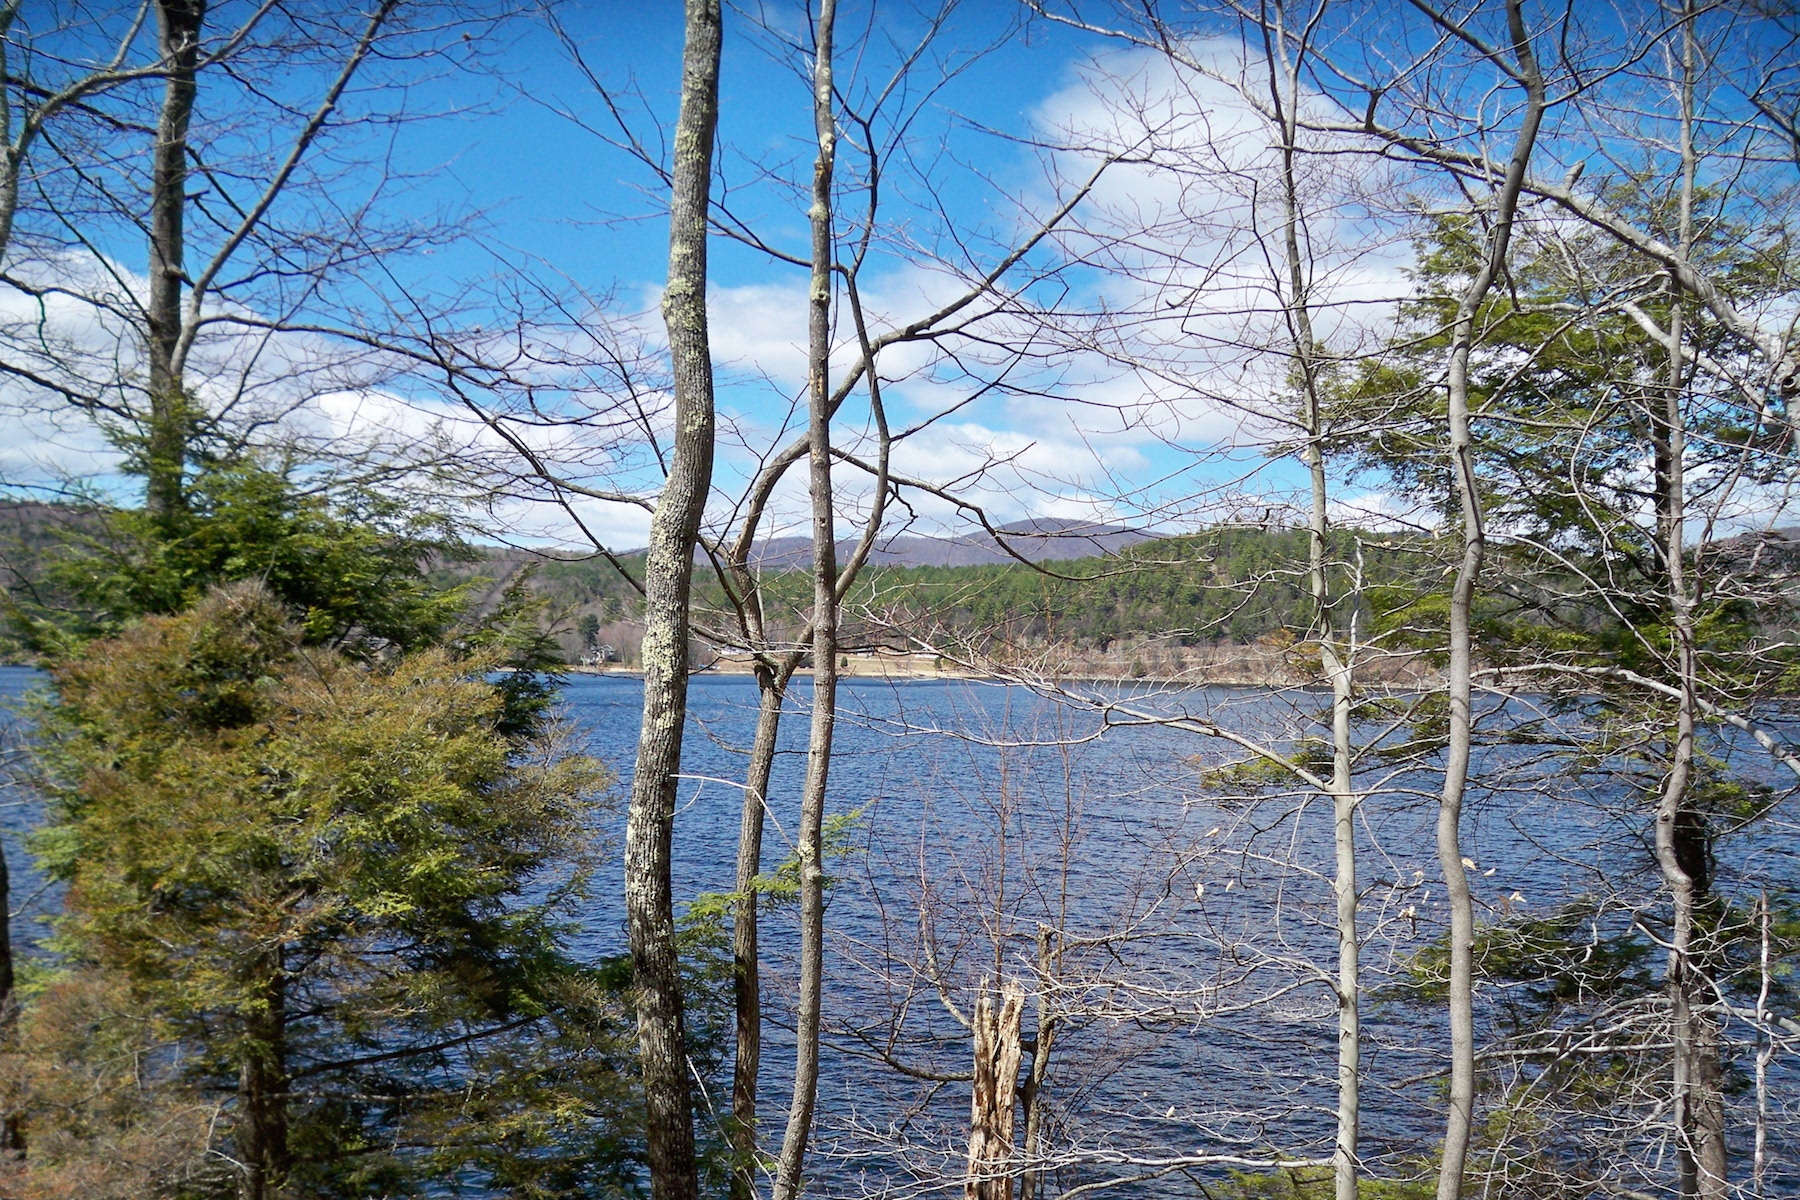 Terreno por un Venta en 25 Acre Lookout Point Over Sacandaga Lake 0 South Shore Rd Day, Nueva York 12835 Estados Unidos